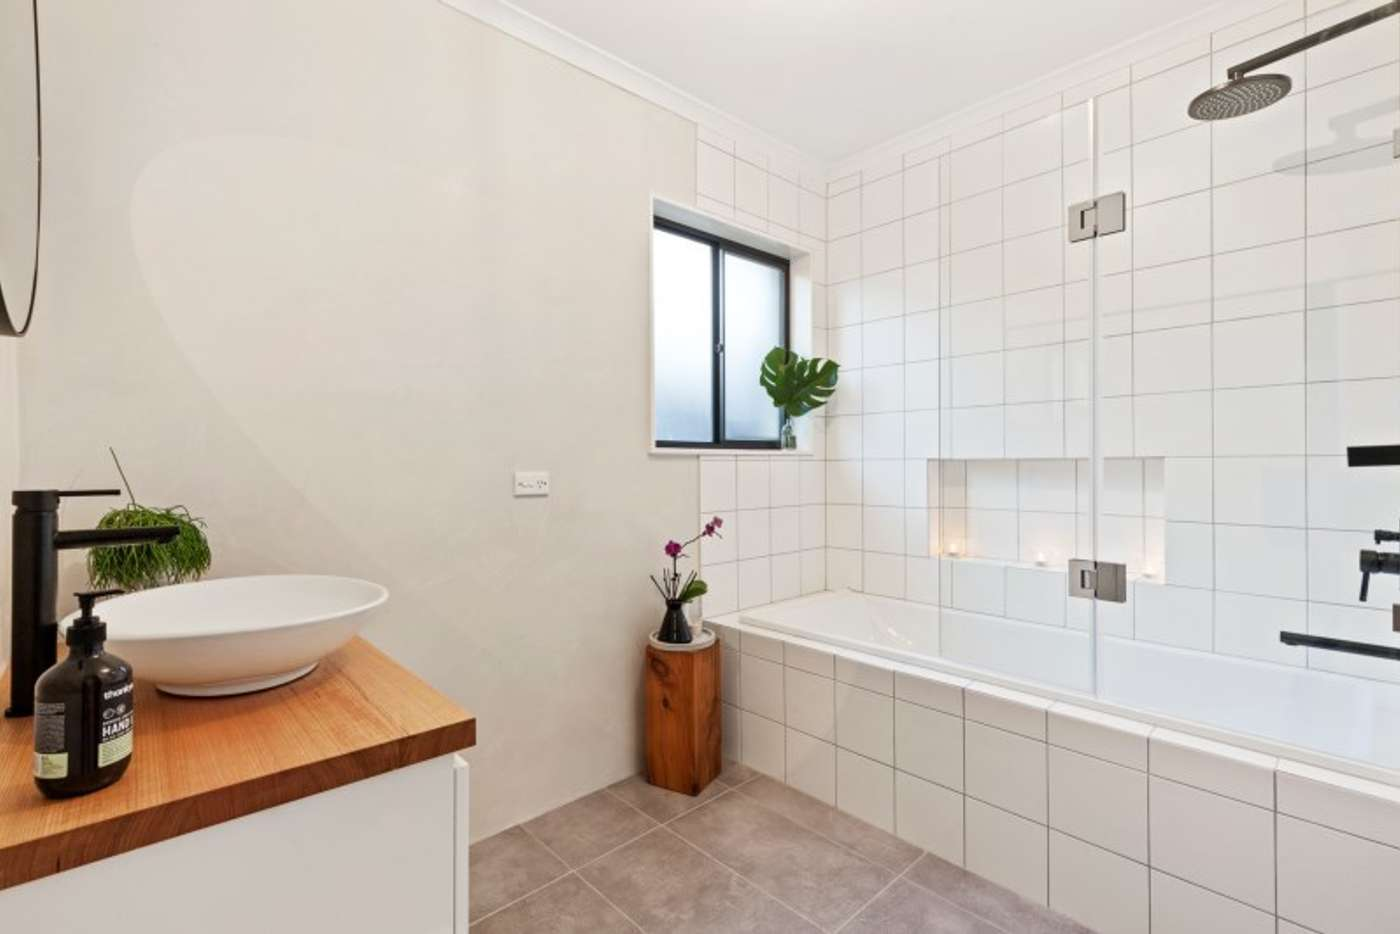 Seventh view of Homely townhouse listing, 1/28 Leumear Street, Oakleigh East VIC 3166